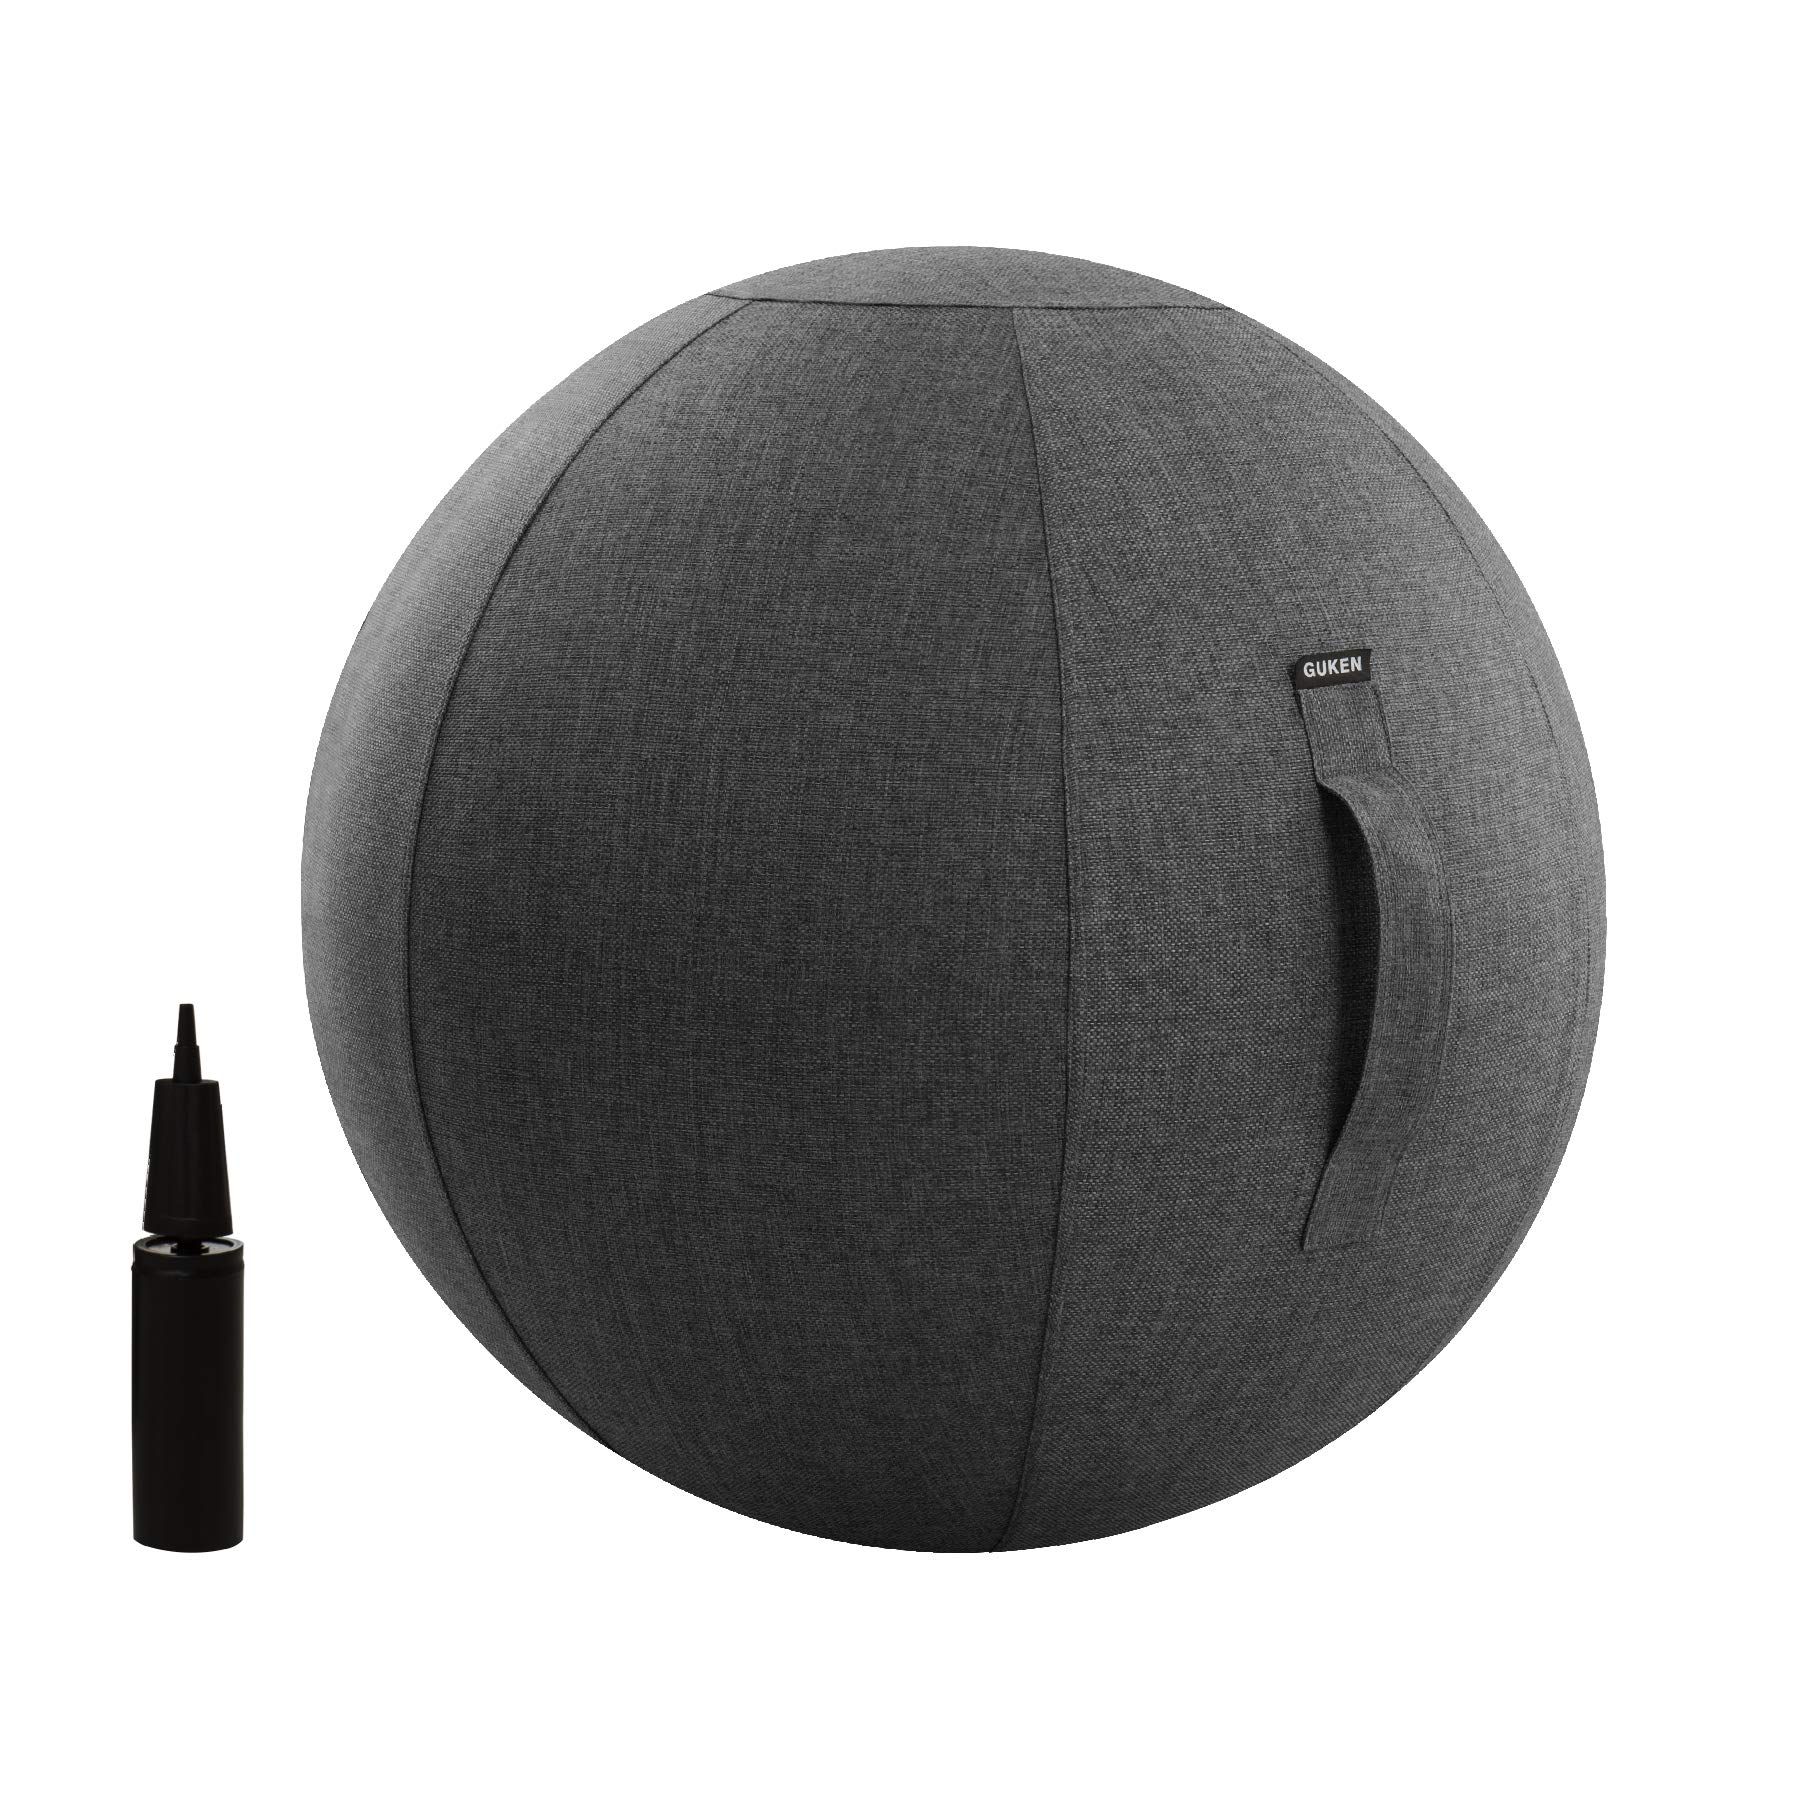 Exercise Ball (65cm Gray) Extra Thick Yoga Ball Chair,Yoga Ball Cover Anti-Burst Heavy Duty Stability Ball Supports 2200lbs, Fitness and Birthing Ball with Inflator and Handle(Office & Home & Gym) by Guken